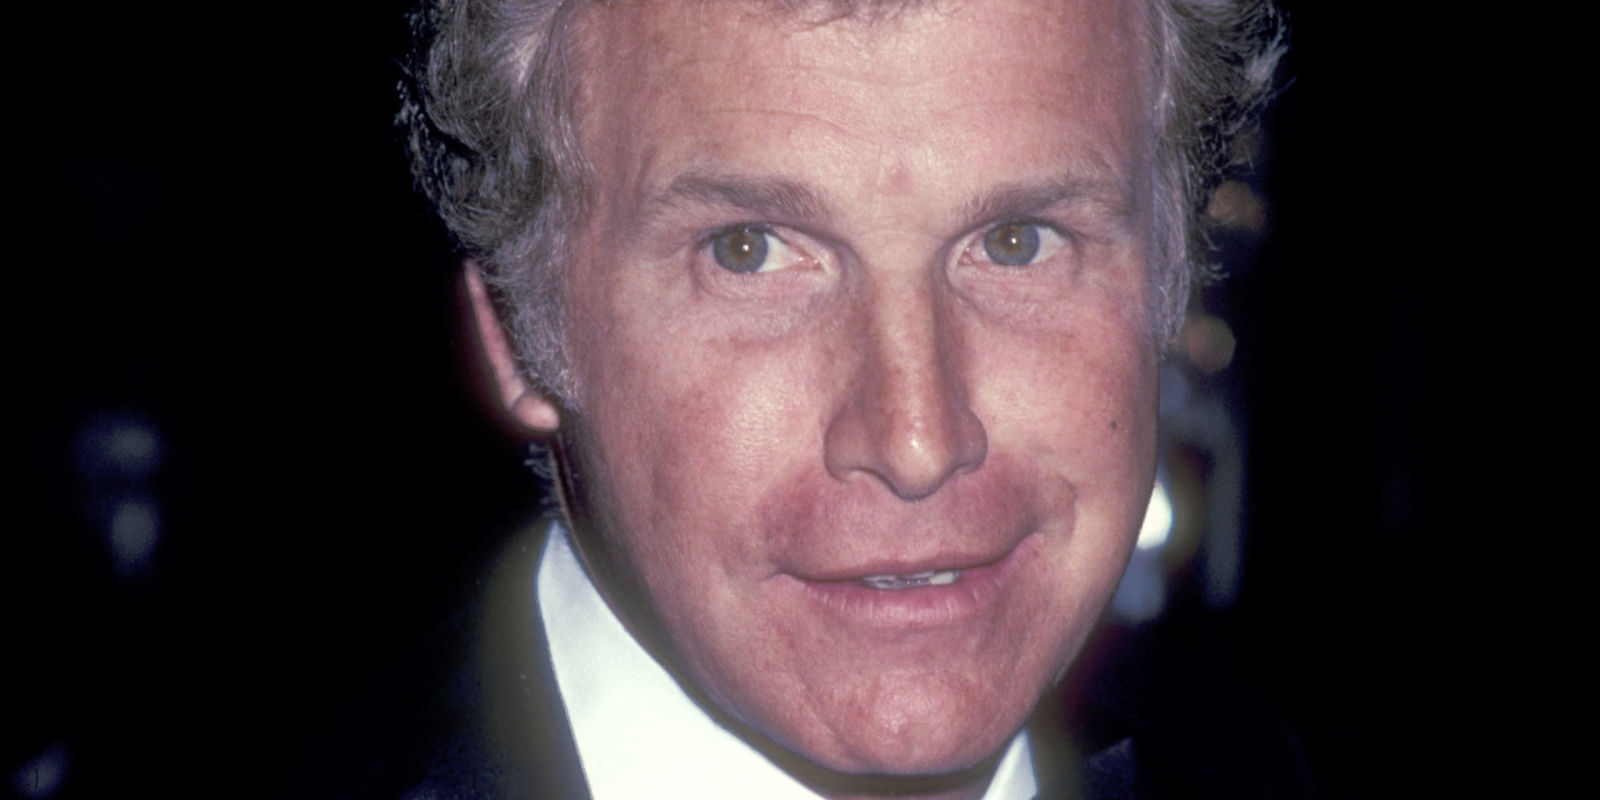 wayne rogers alan aldawayne rogers and alan alda, wayne rogers wiki, wayne rogers, wayne rogers dead, wayne rogers mash, wayne rogers will ferrell, wayne rogers net worth, wayne rogers death, wayne rogers imdb, wayne rogers died, wayne rogers fox news, wayne rogers obituary, wayne rogers politics, wayne rogers cause of death, wayne rogers funeral, wayne rogers cancer, wayne rogers & co, wayne rogers leaves mash, wayne rogers alan alda, wayne rogers cashin in